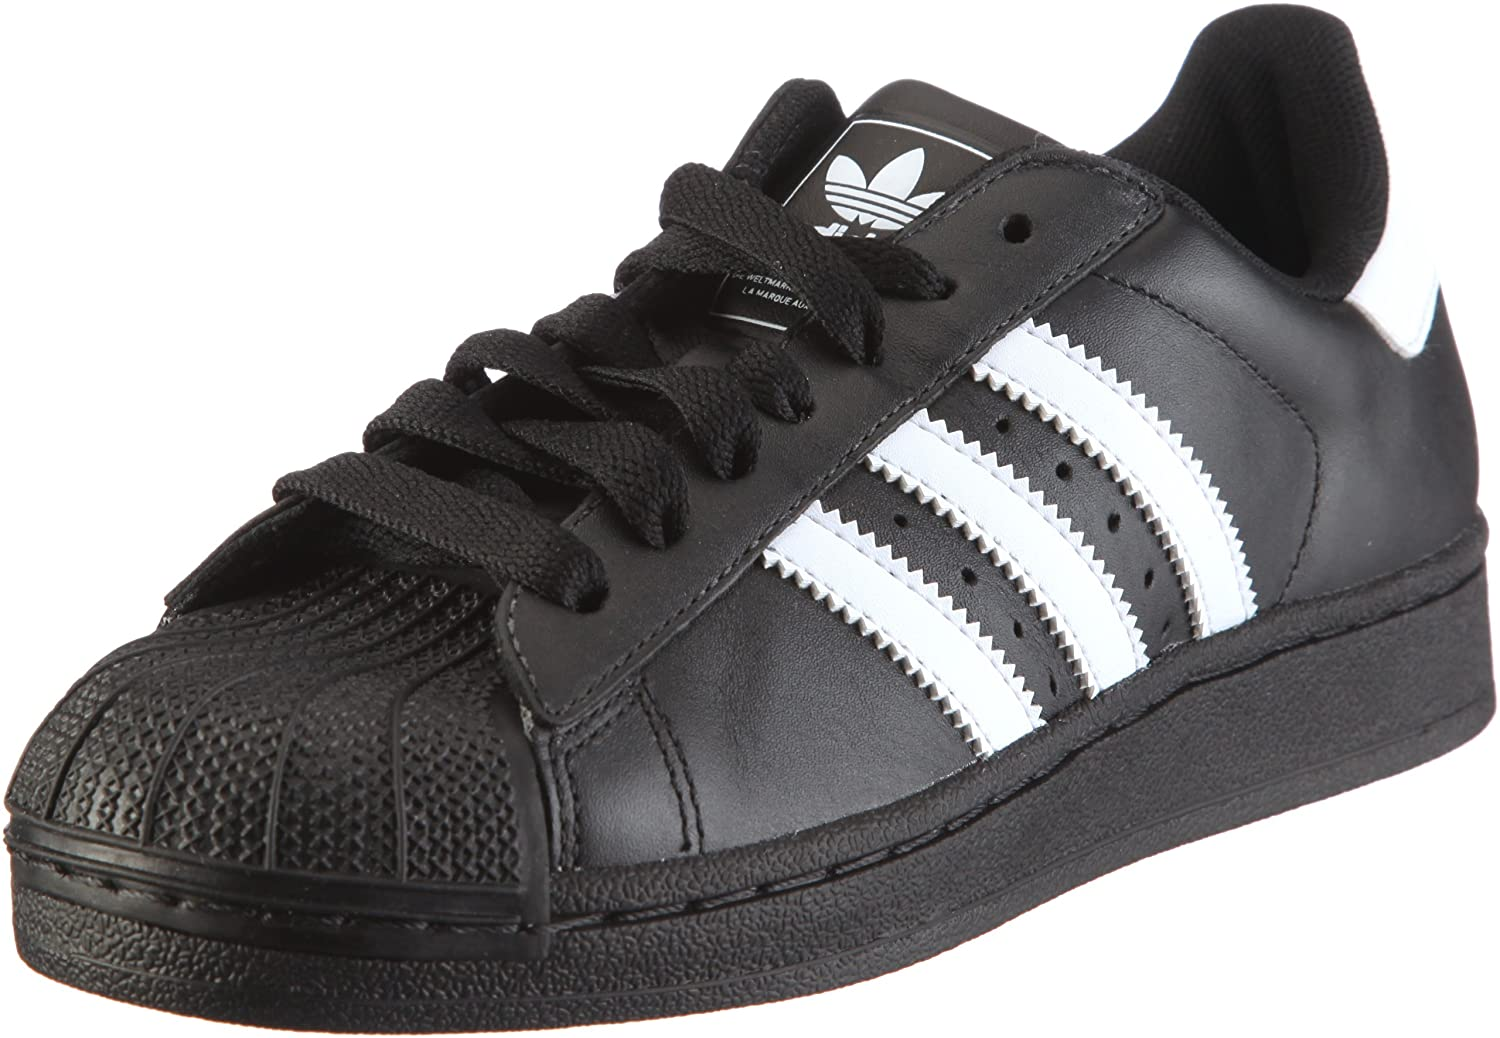 Adidas - Superstar Q46684